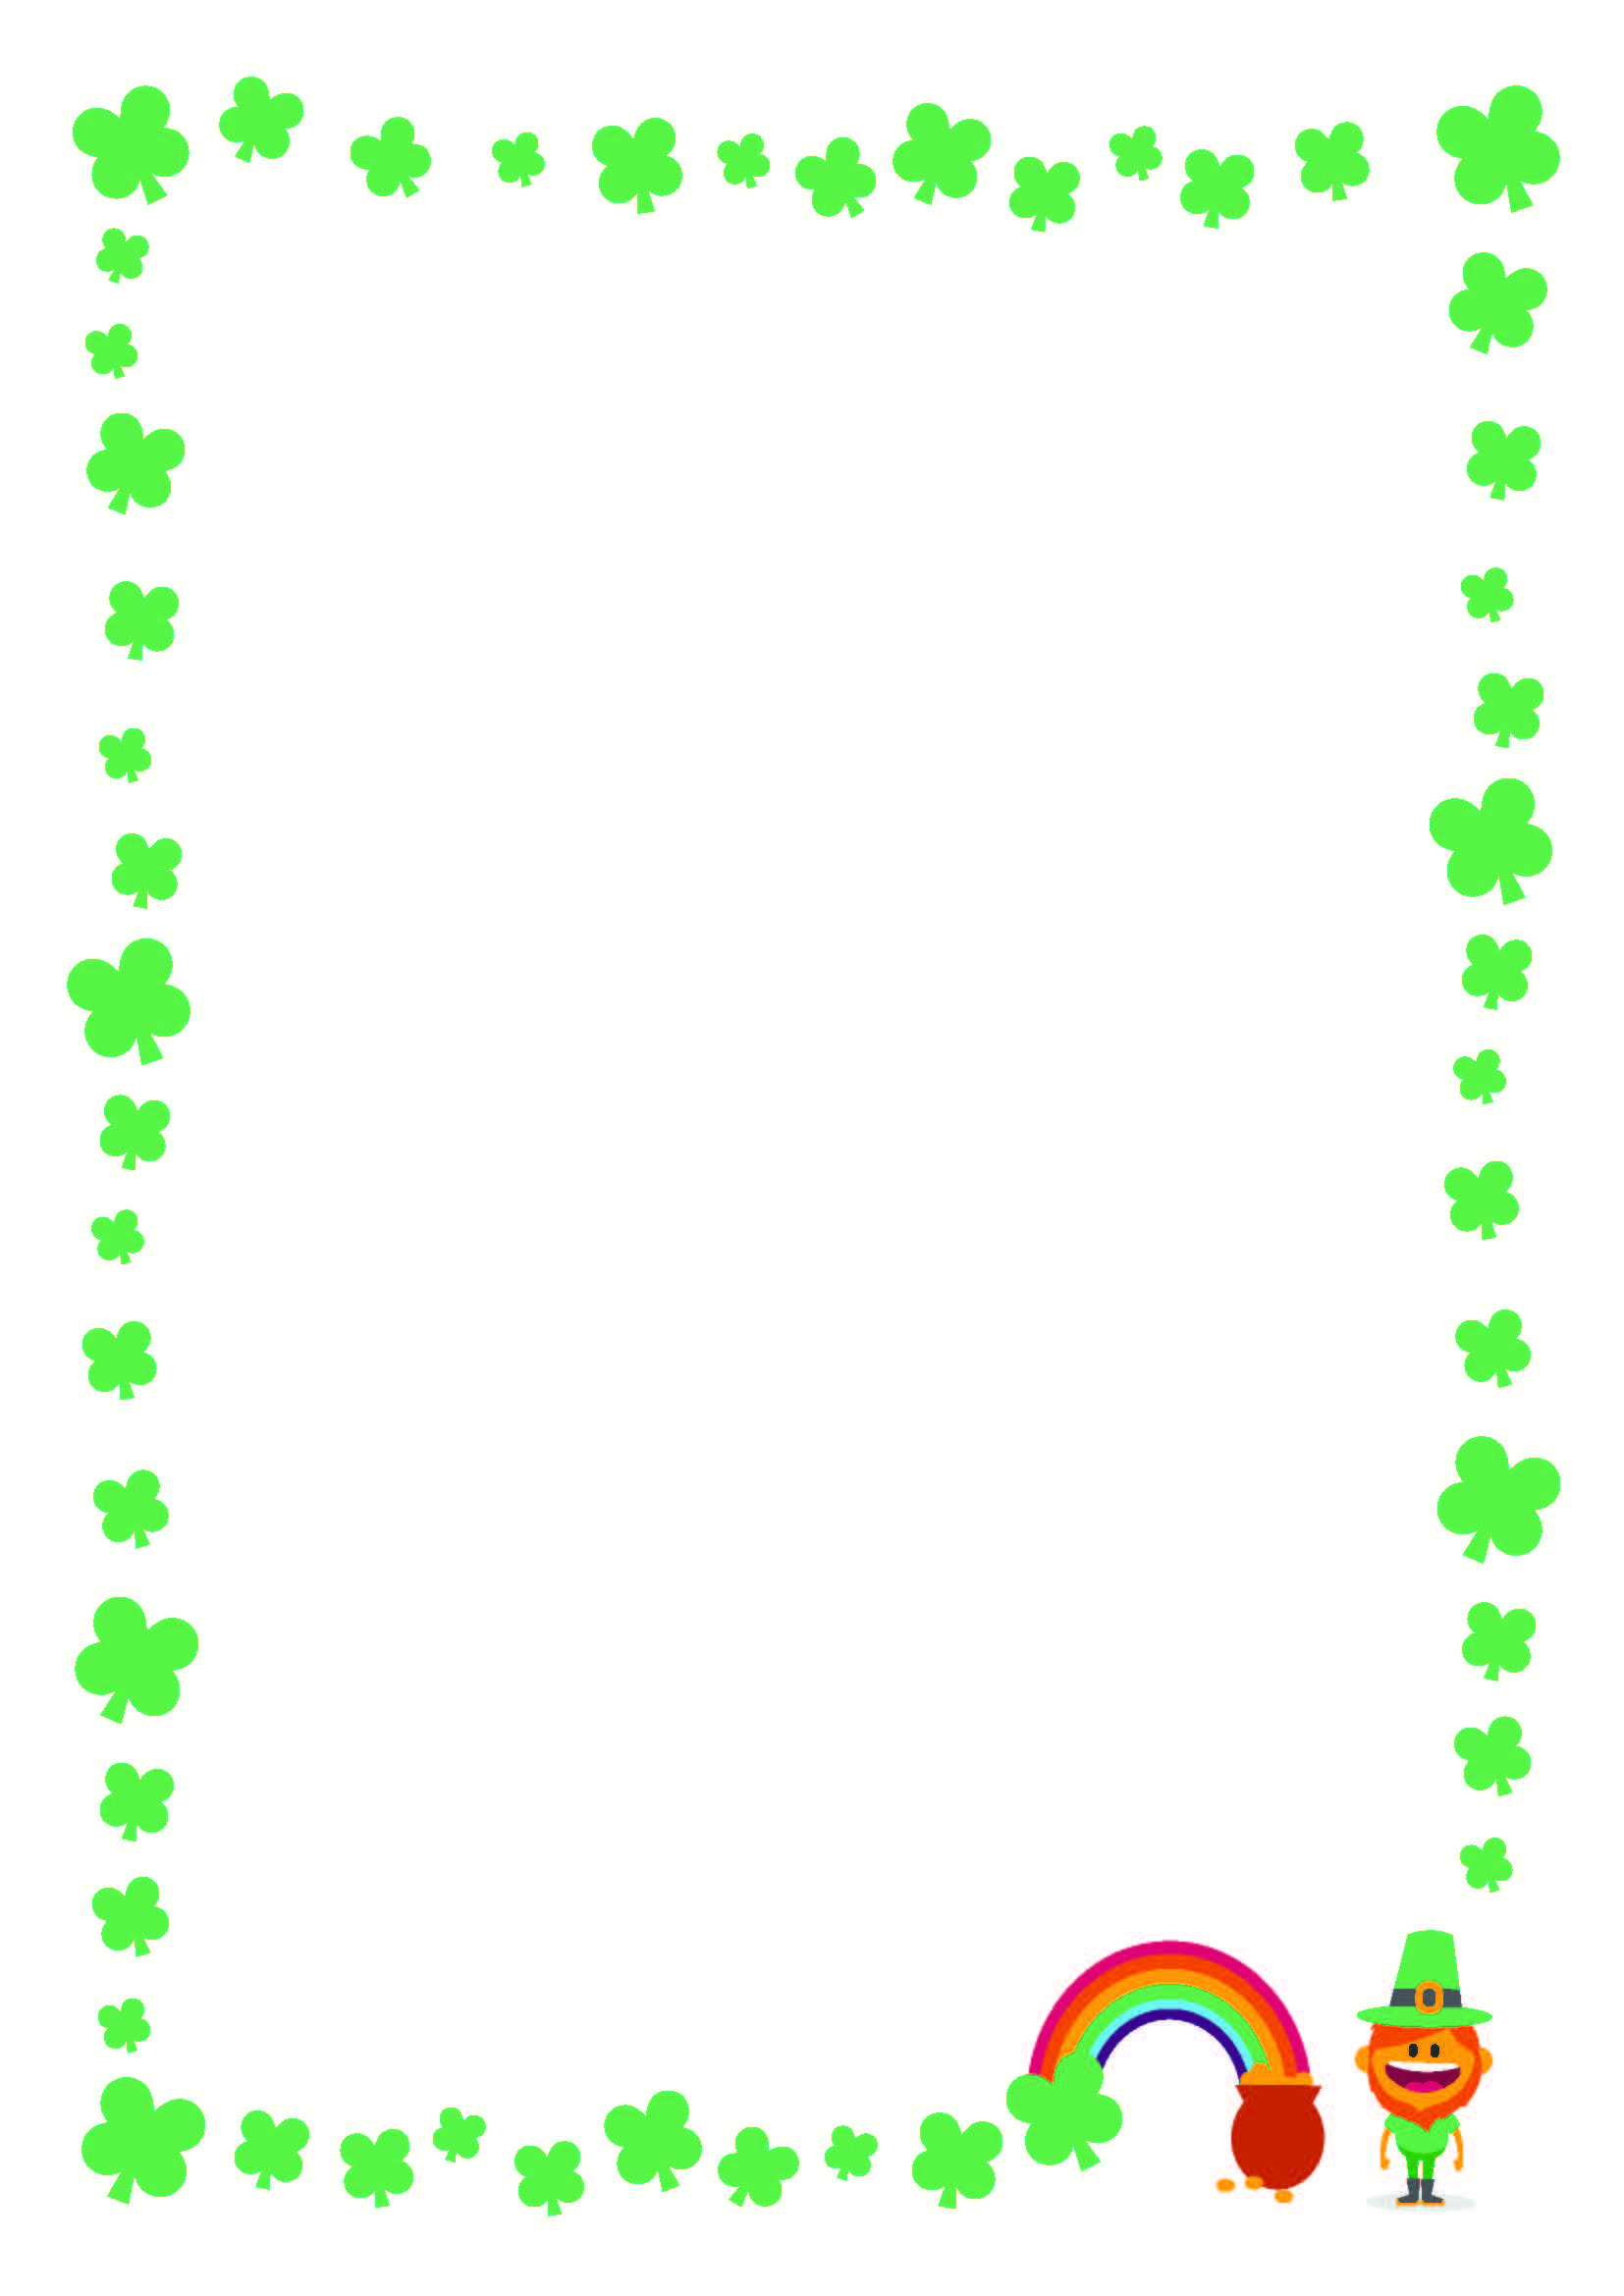 FREE St. Patricku0027s Day Printable Writing Paper With Clover Border